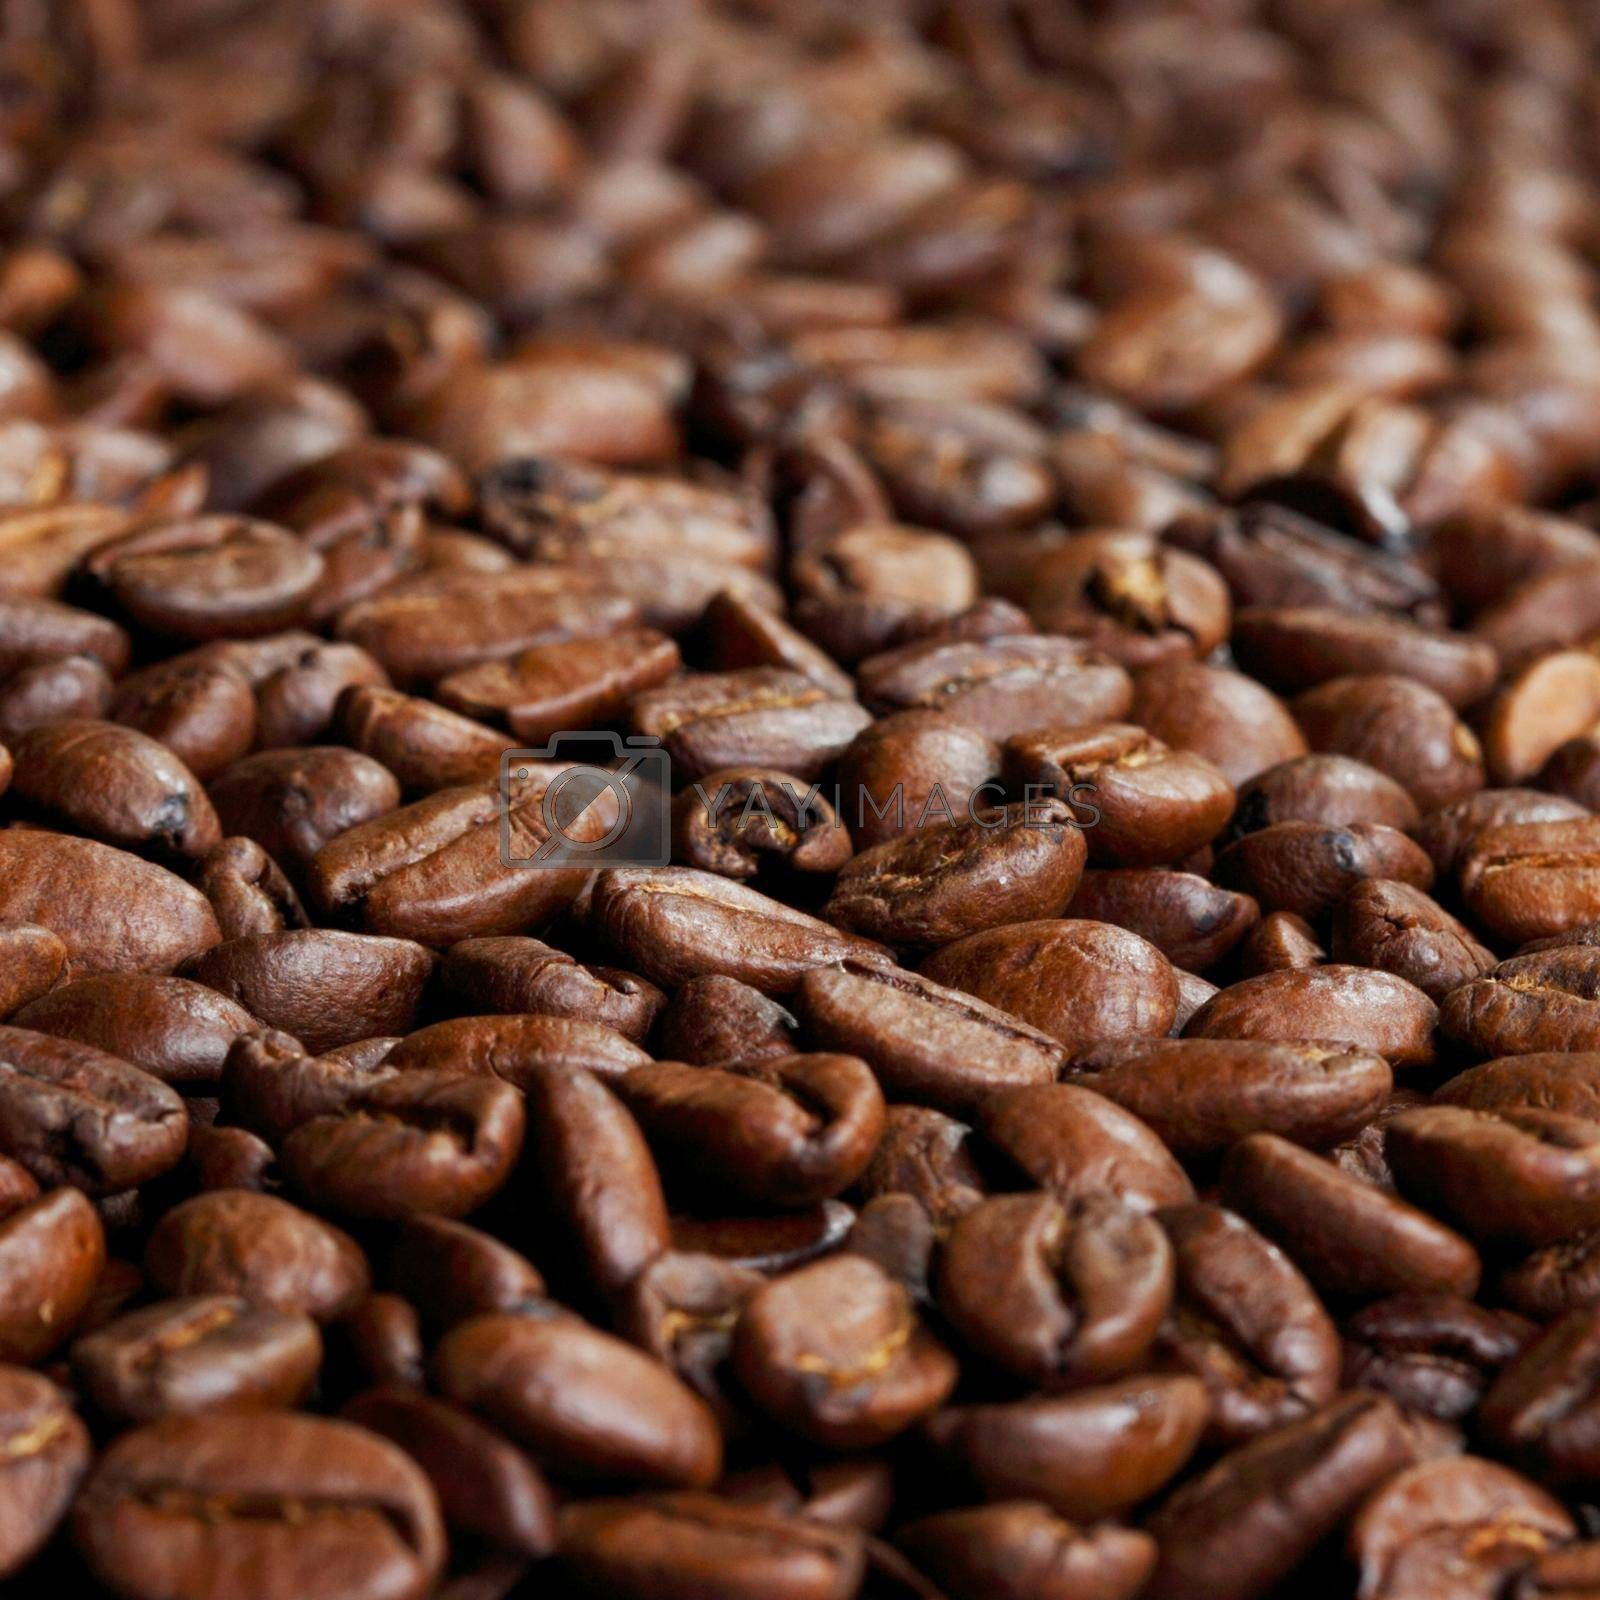 Roasted coffee beans close up detail background